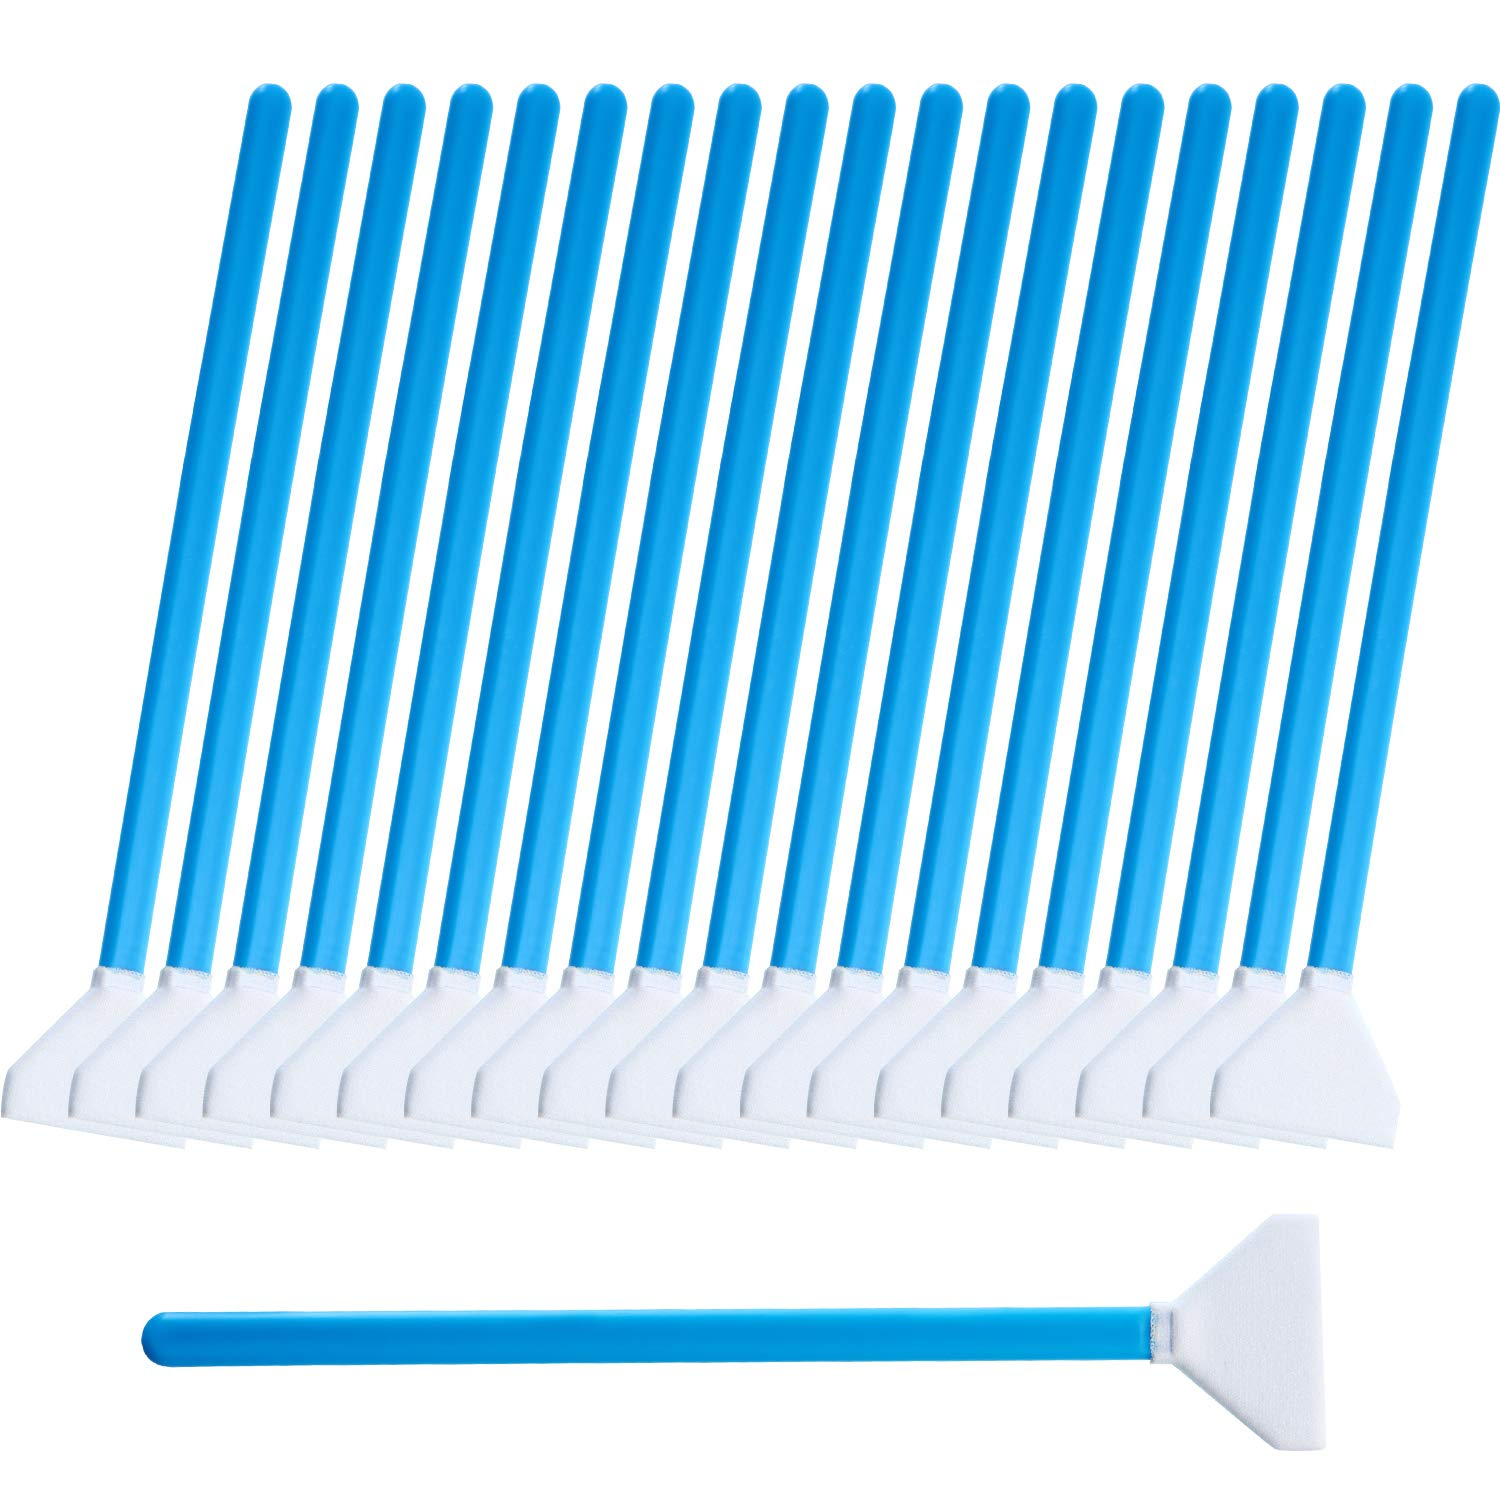 20 Pieces DSLR or SLR Digital Camera Sensor Cleaning Swab Type 3 (DDR-24) Cleaning Kit for APS-C Sensor (CCD/CMOS), 24 mm Wide Cleaning Swabs by Fiada